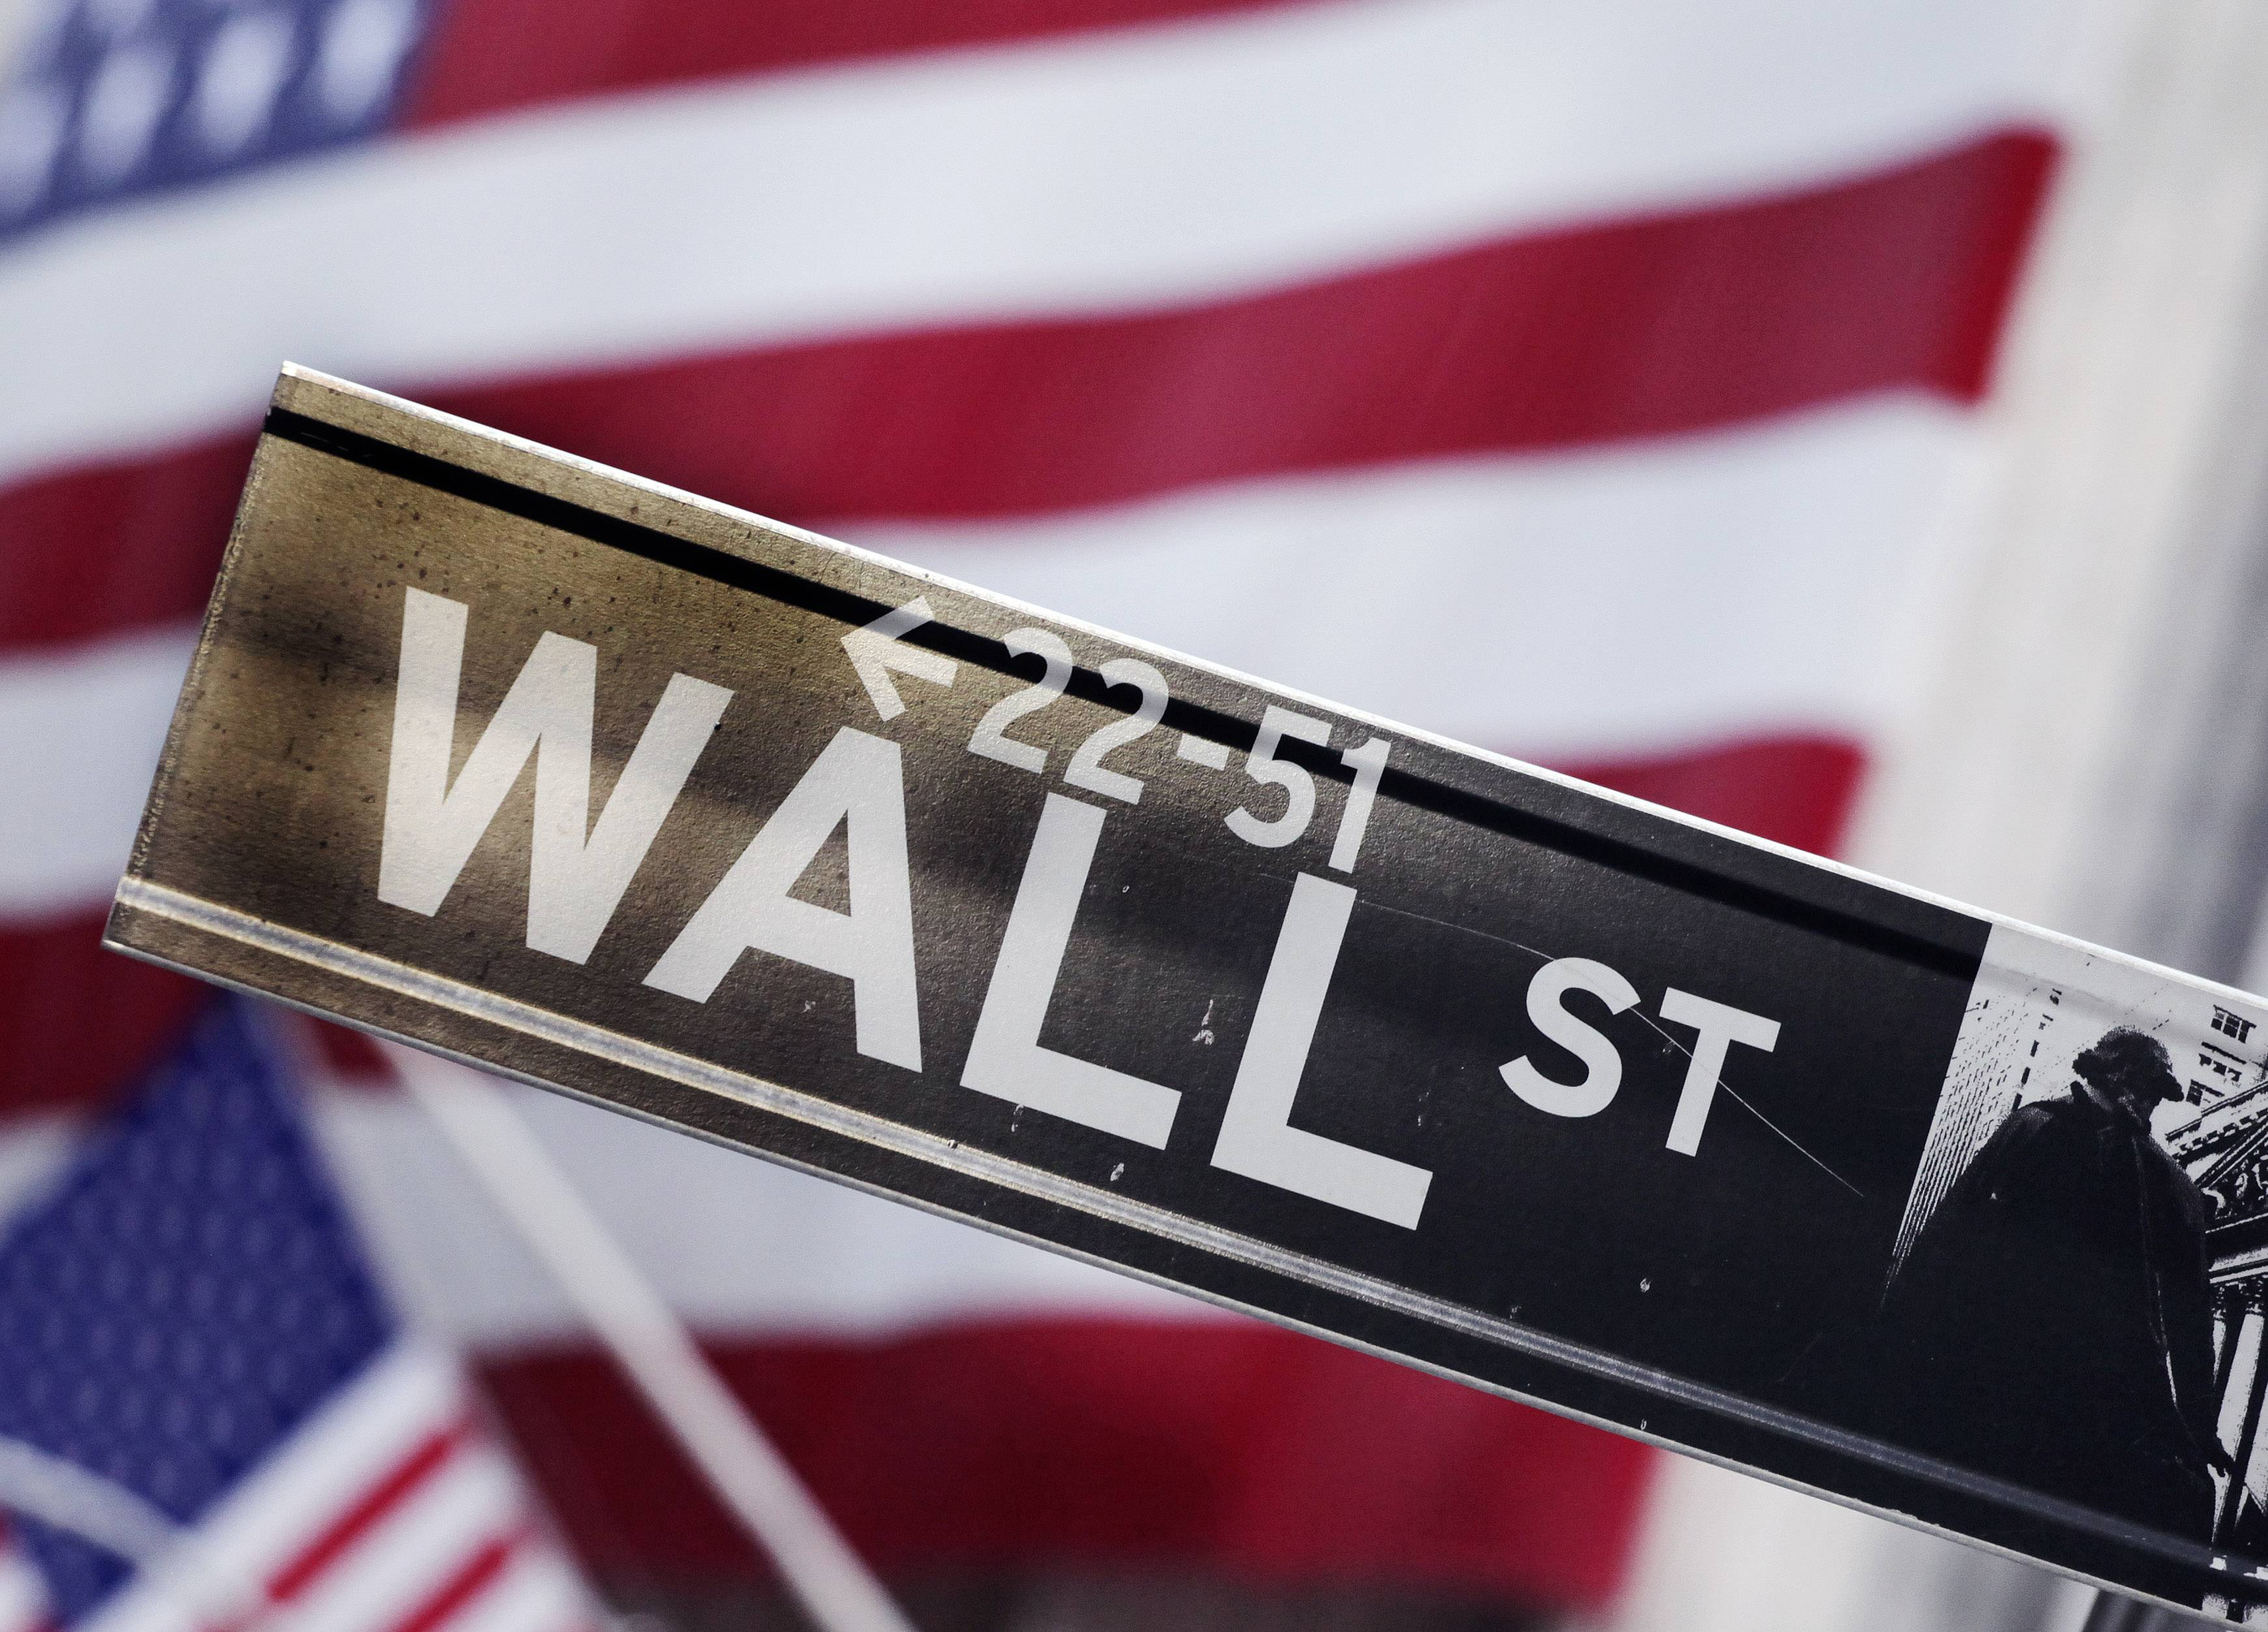 A Wall Street street sign near the New York Stock Exchange.